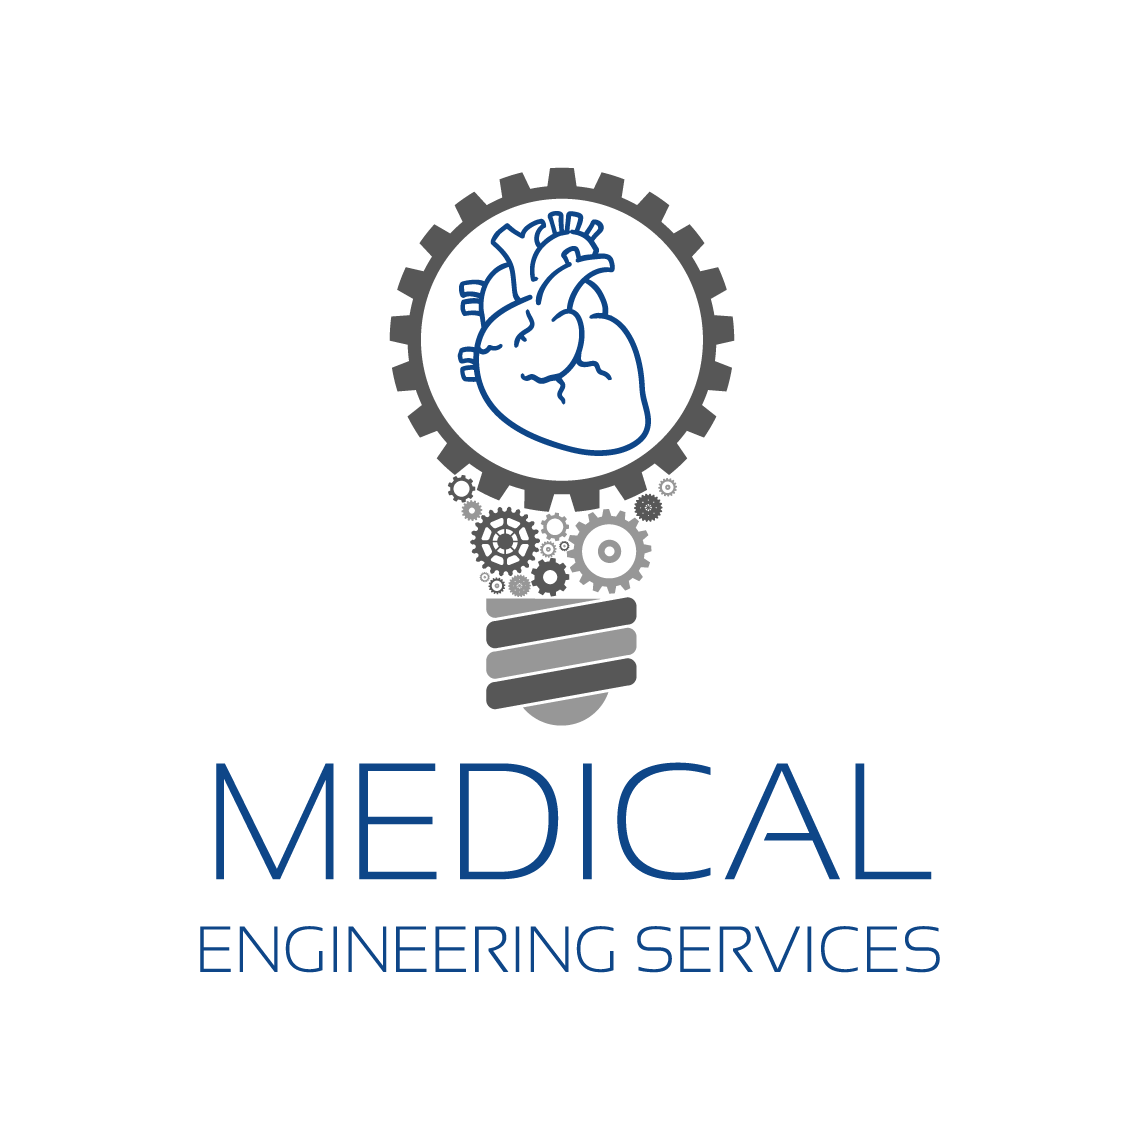 Medical Engineering Services